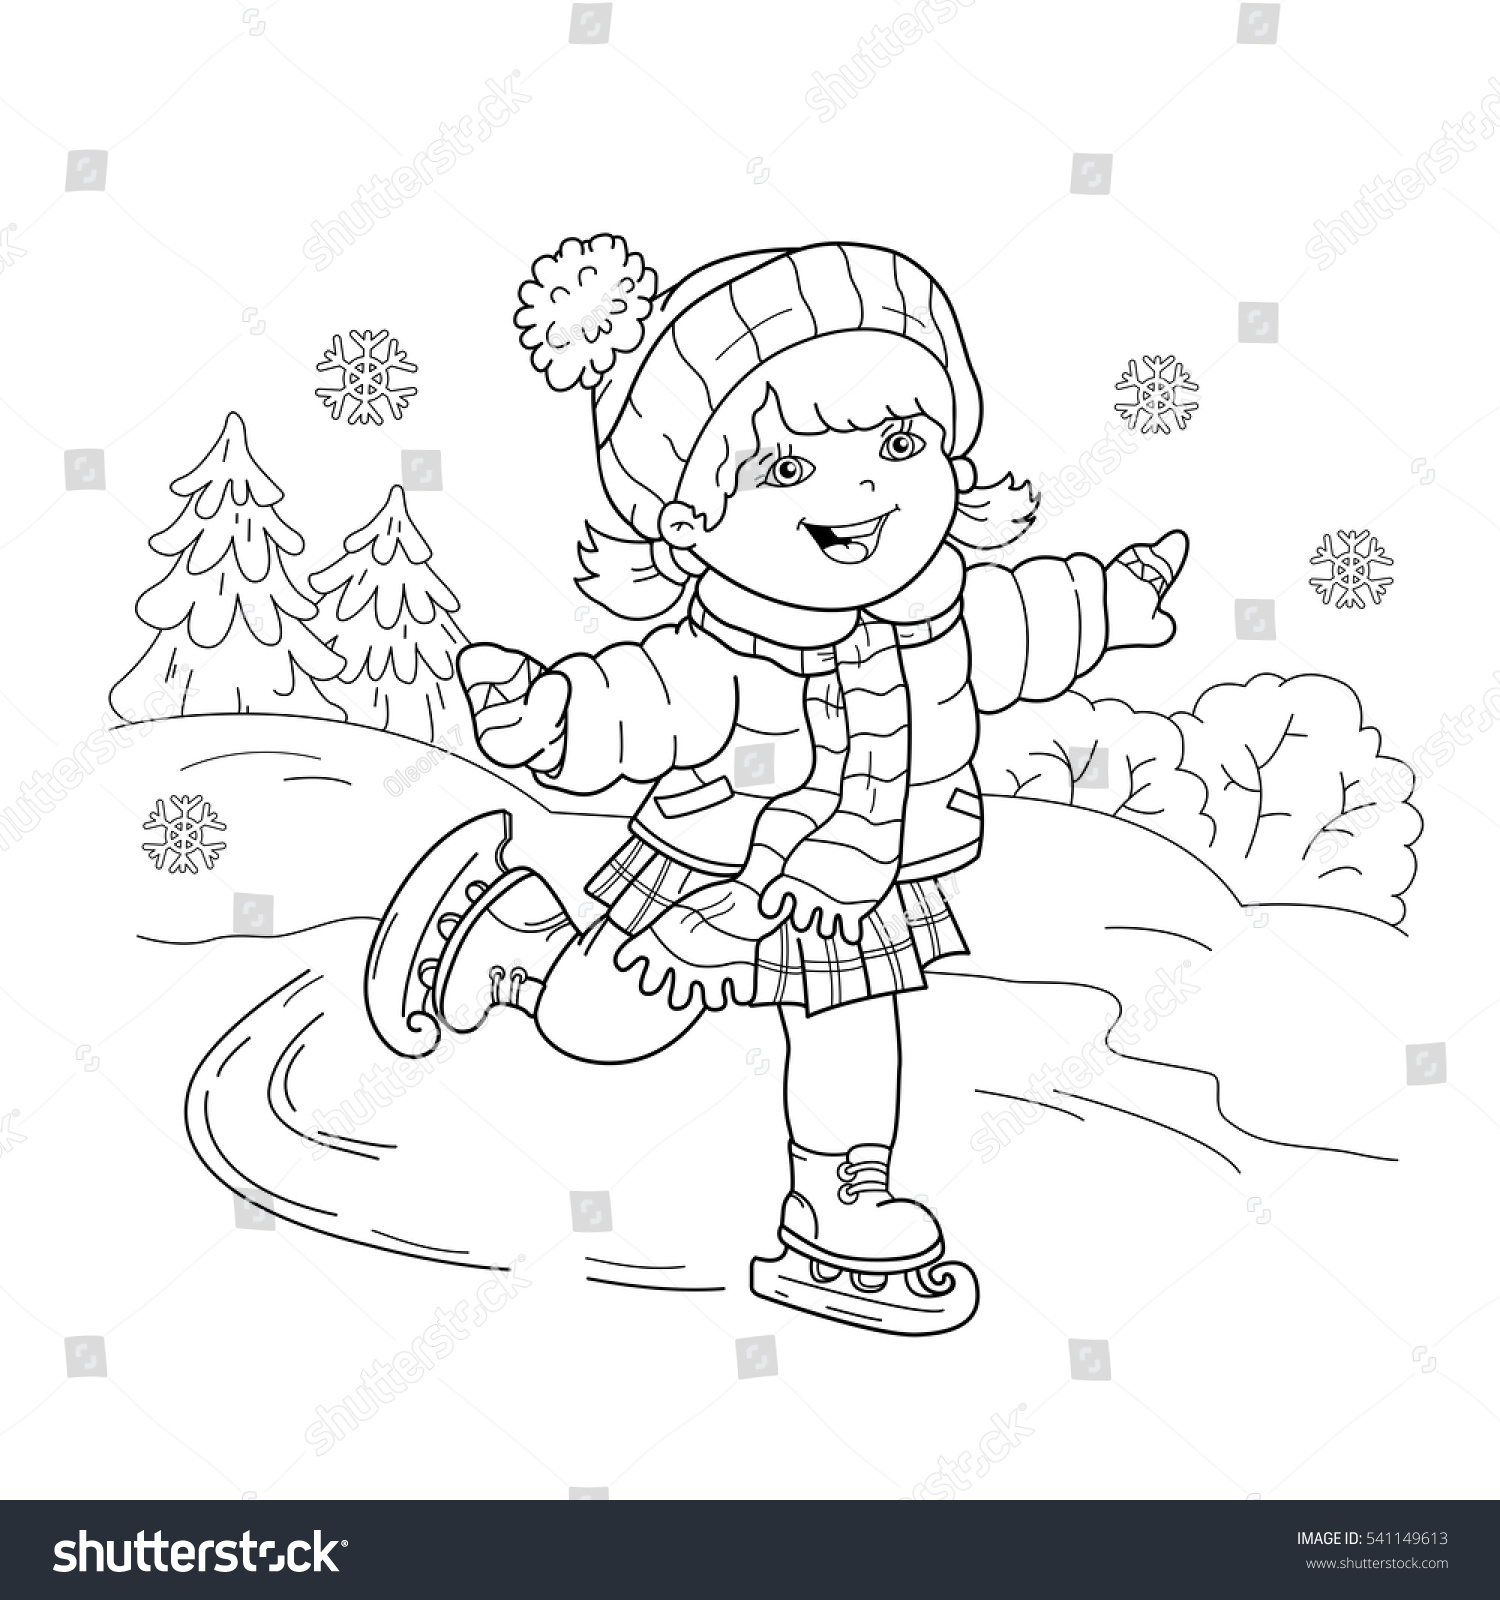 Coloring Page Outline Cartoon Girl Skating Stock Vector